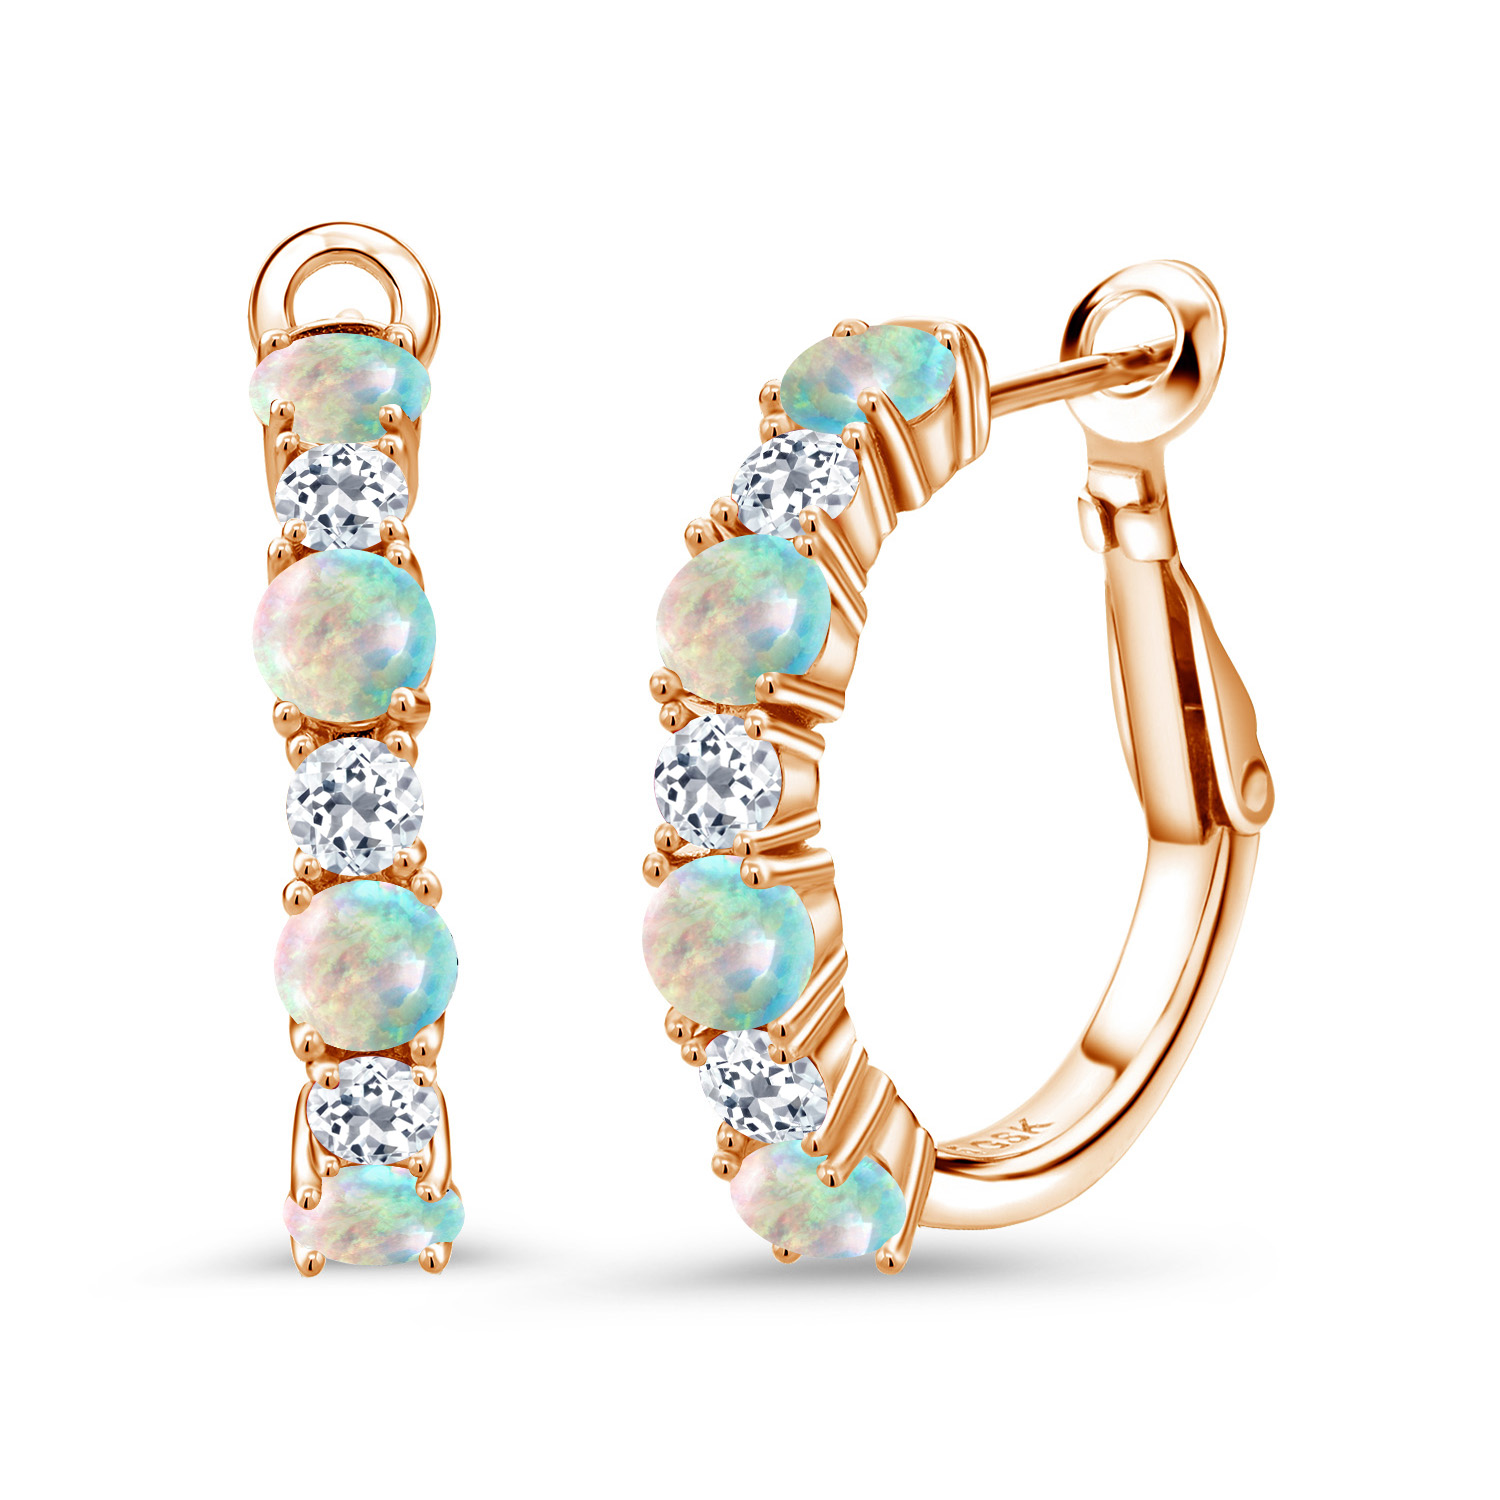 Gem Stone King 2.00 Ct Oval Cabochon White Simulated Opal Silver Plated Brass Stud Earrings